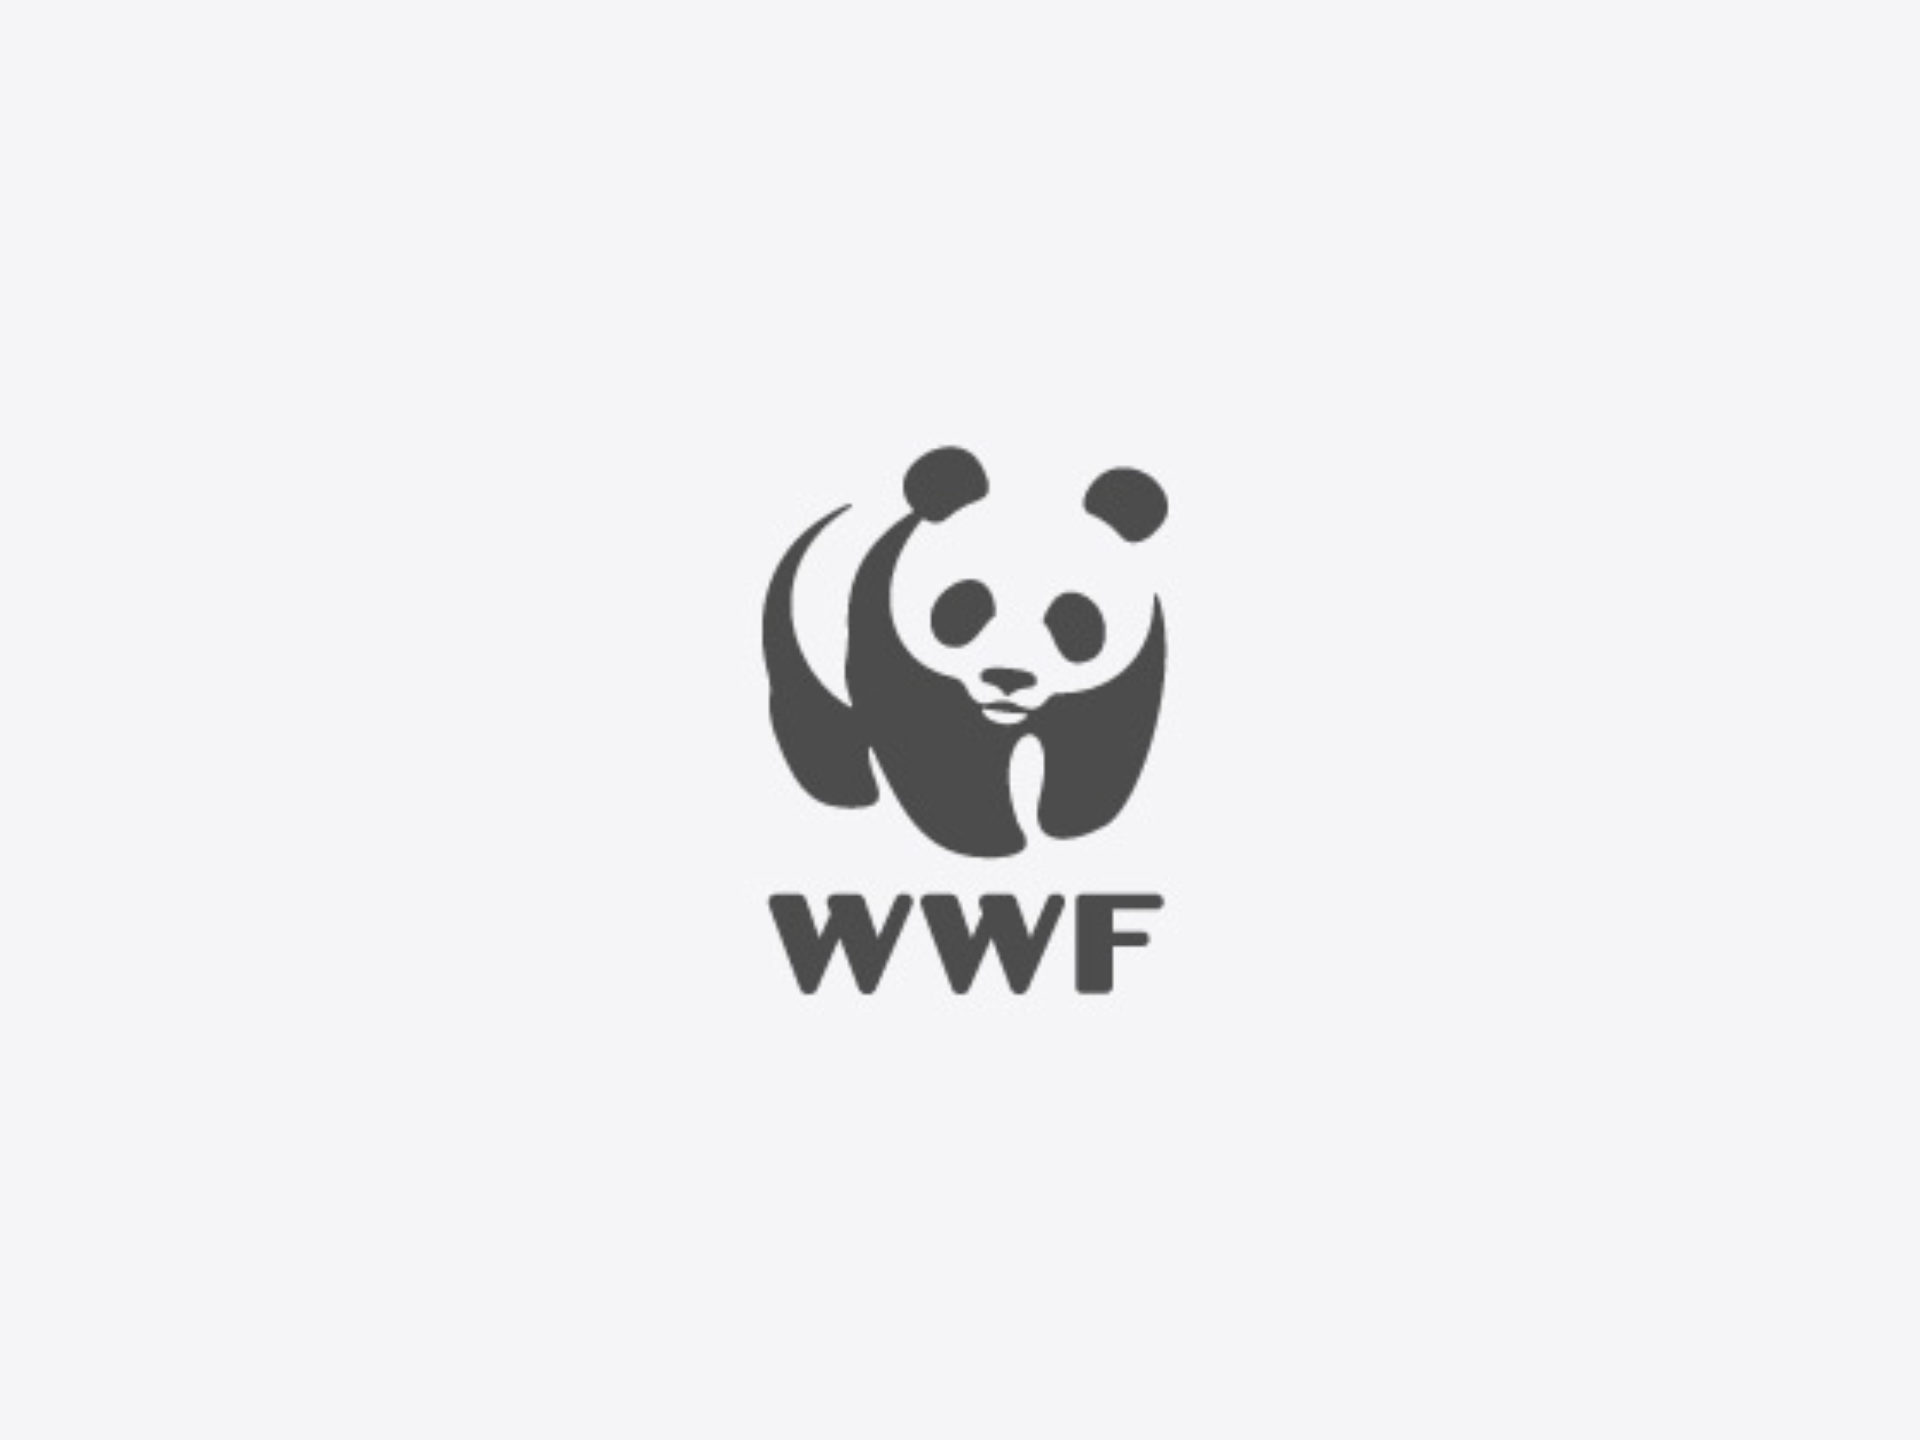 Manroof Referenz Wwf